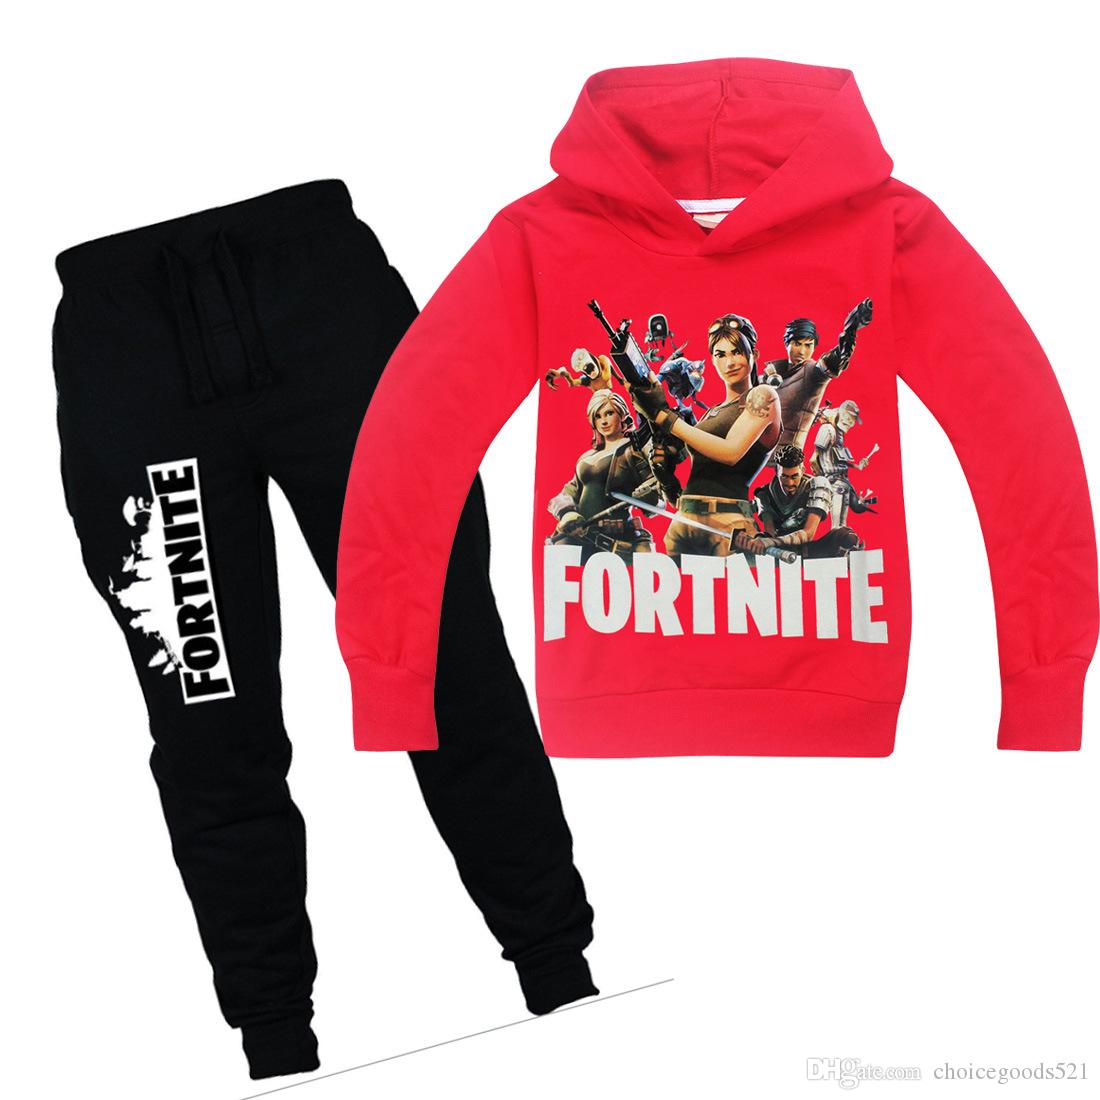 Children Clothing Sets Spring Autumn Baby Boys Girls Clothes Sets Fashion Fortnite Print Hoodie+ Pants 2 Pcs Toddler Suits kids clothes